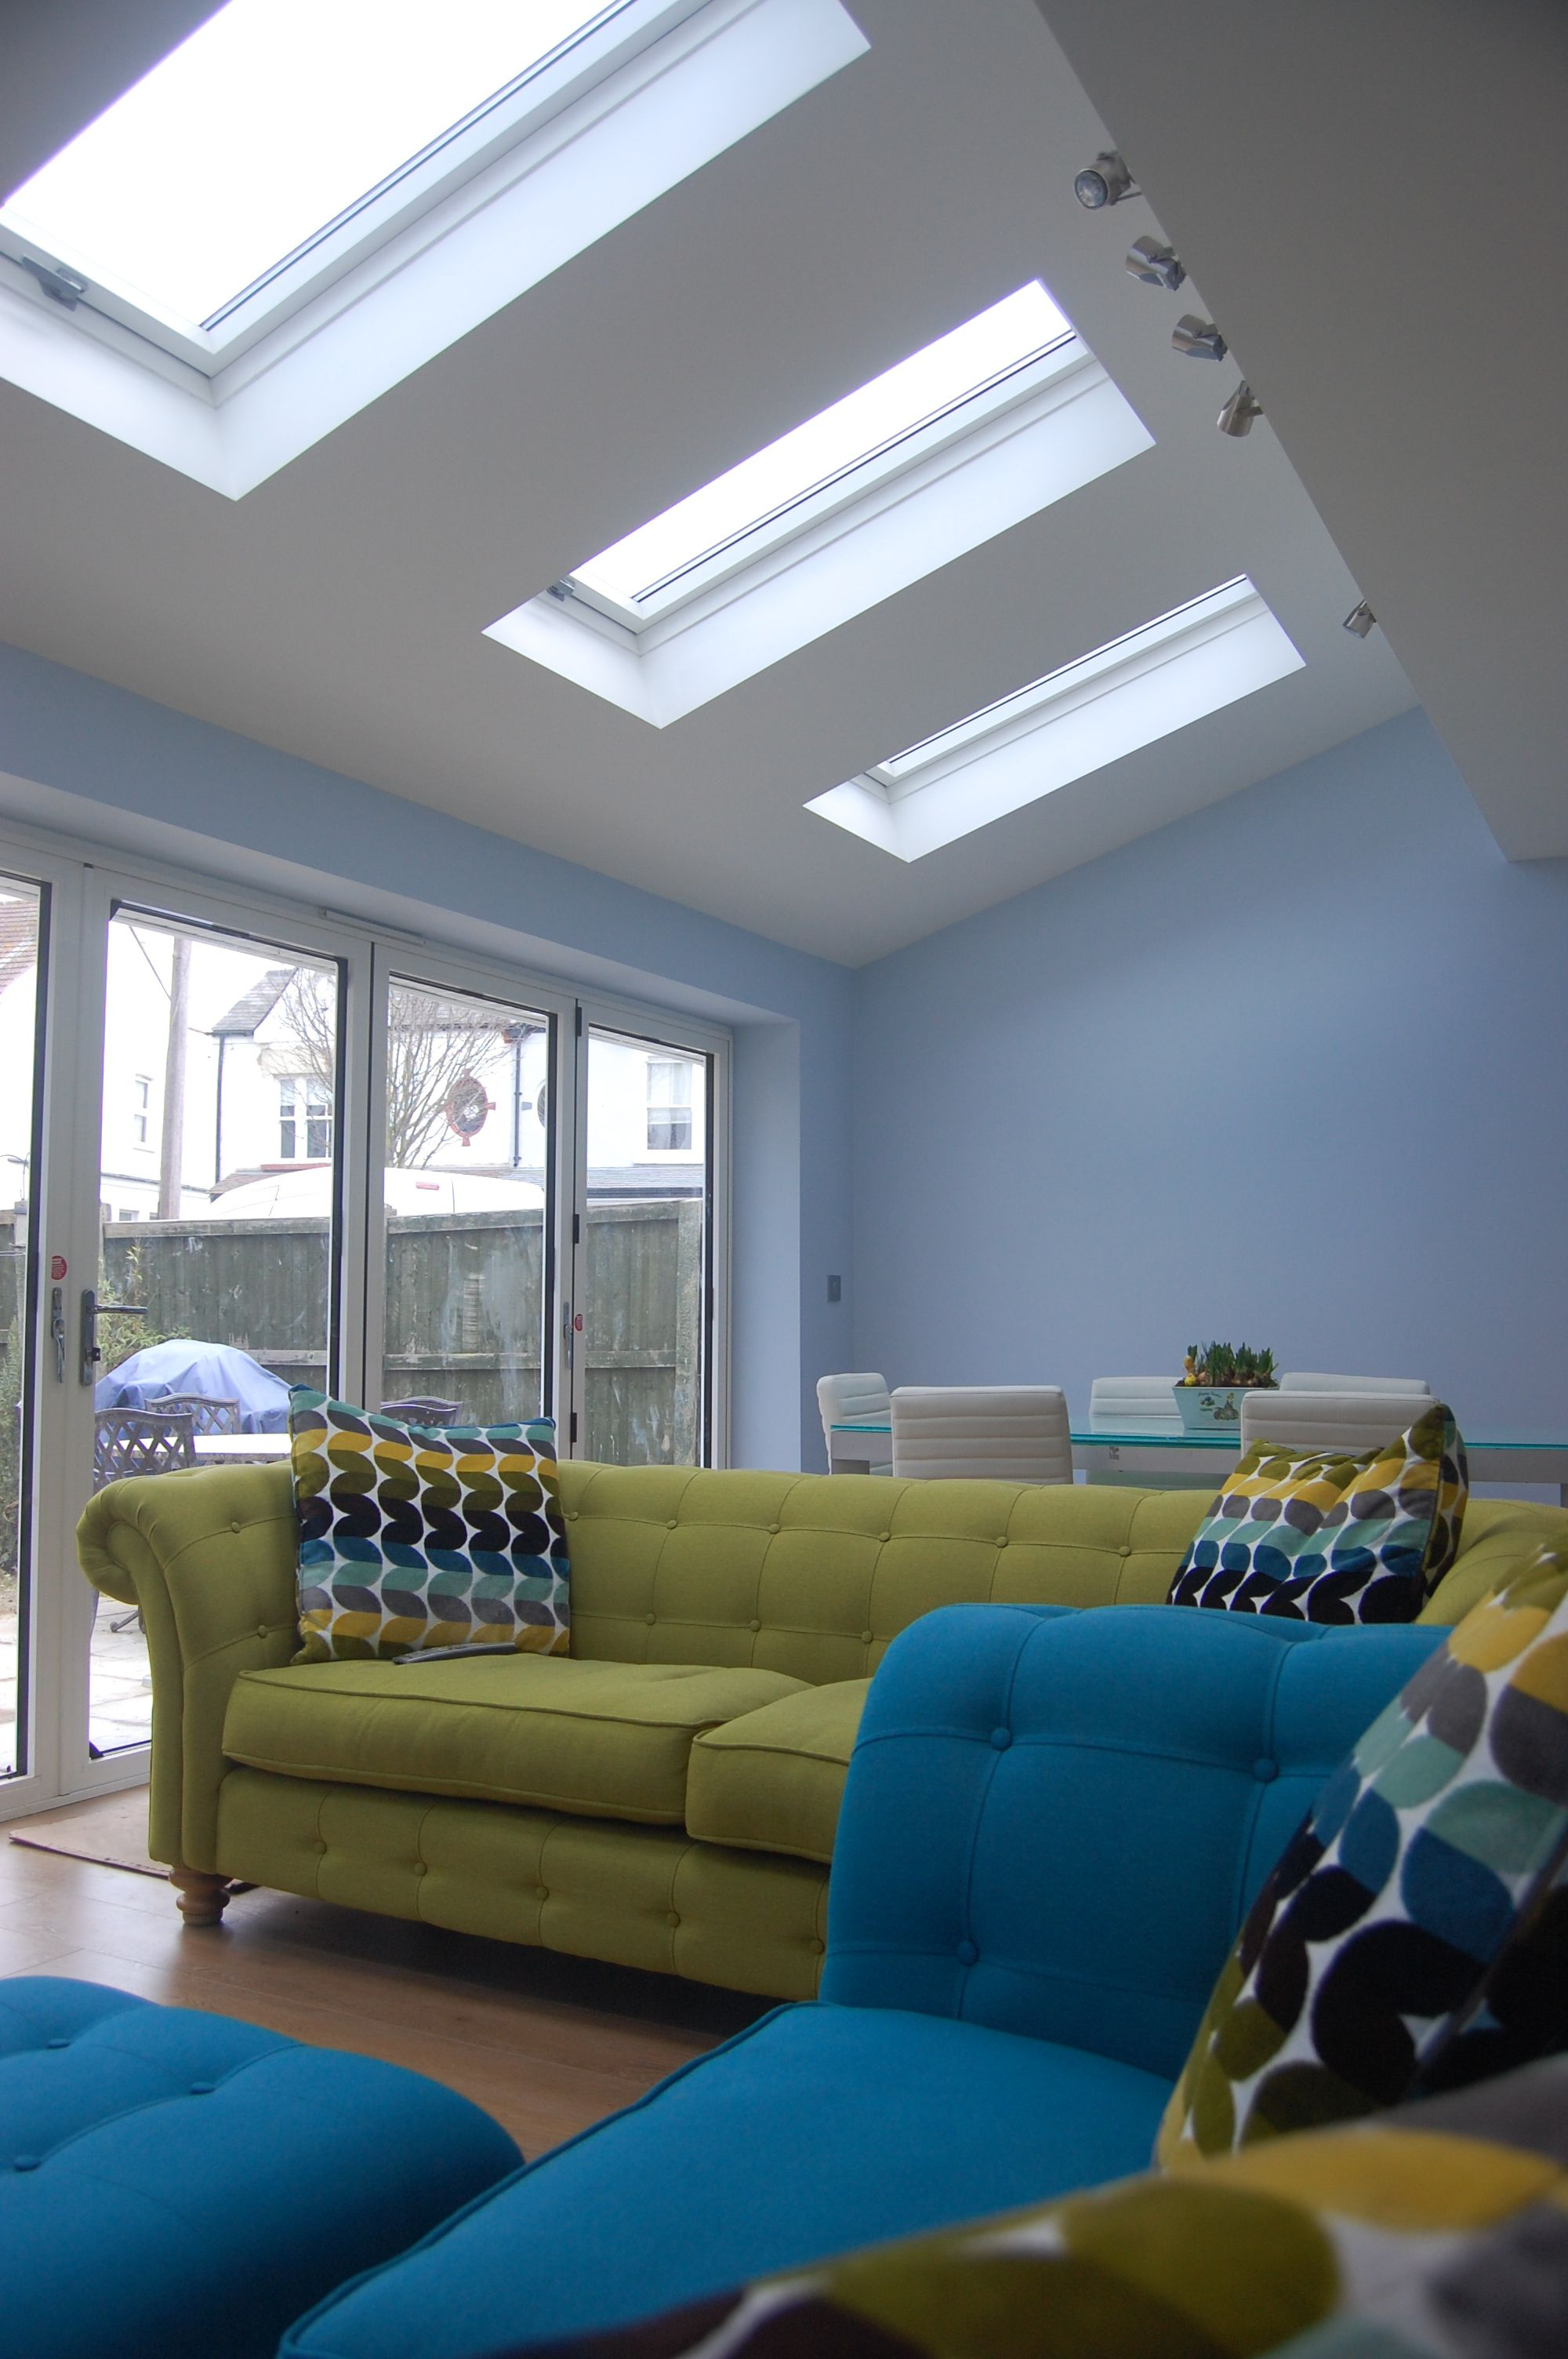 Single storey extension pitched roof google search for Rear access home designs